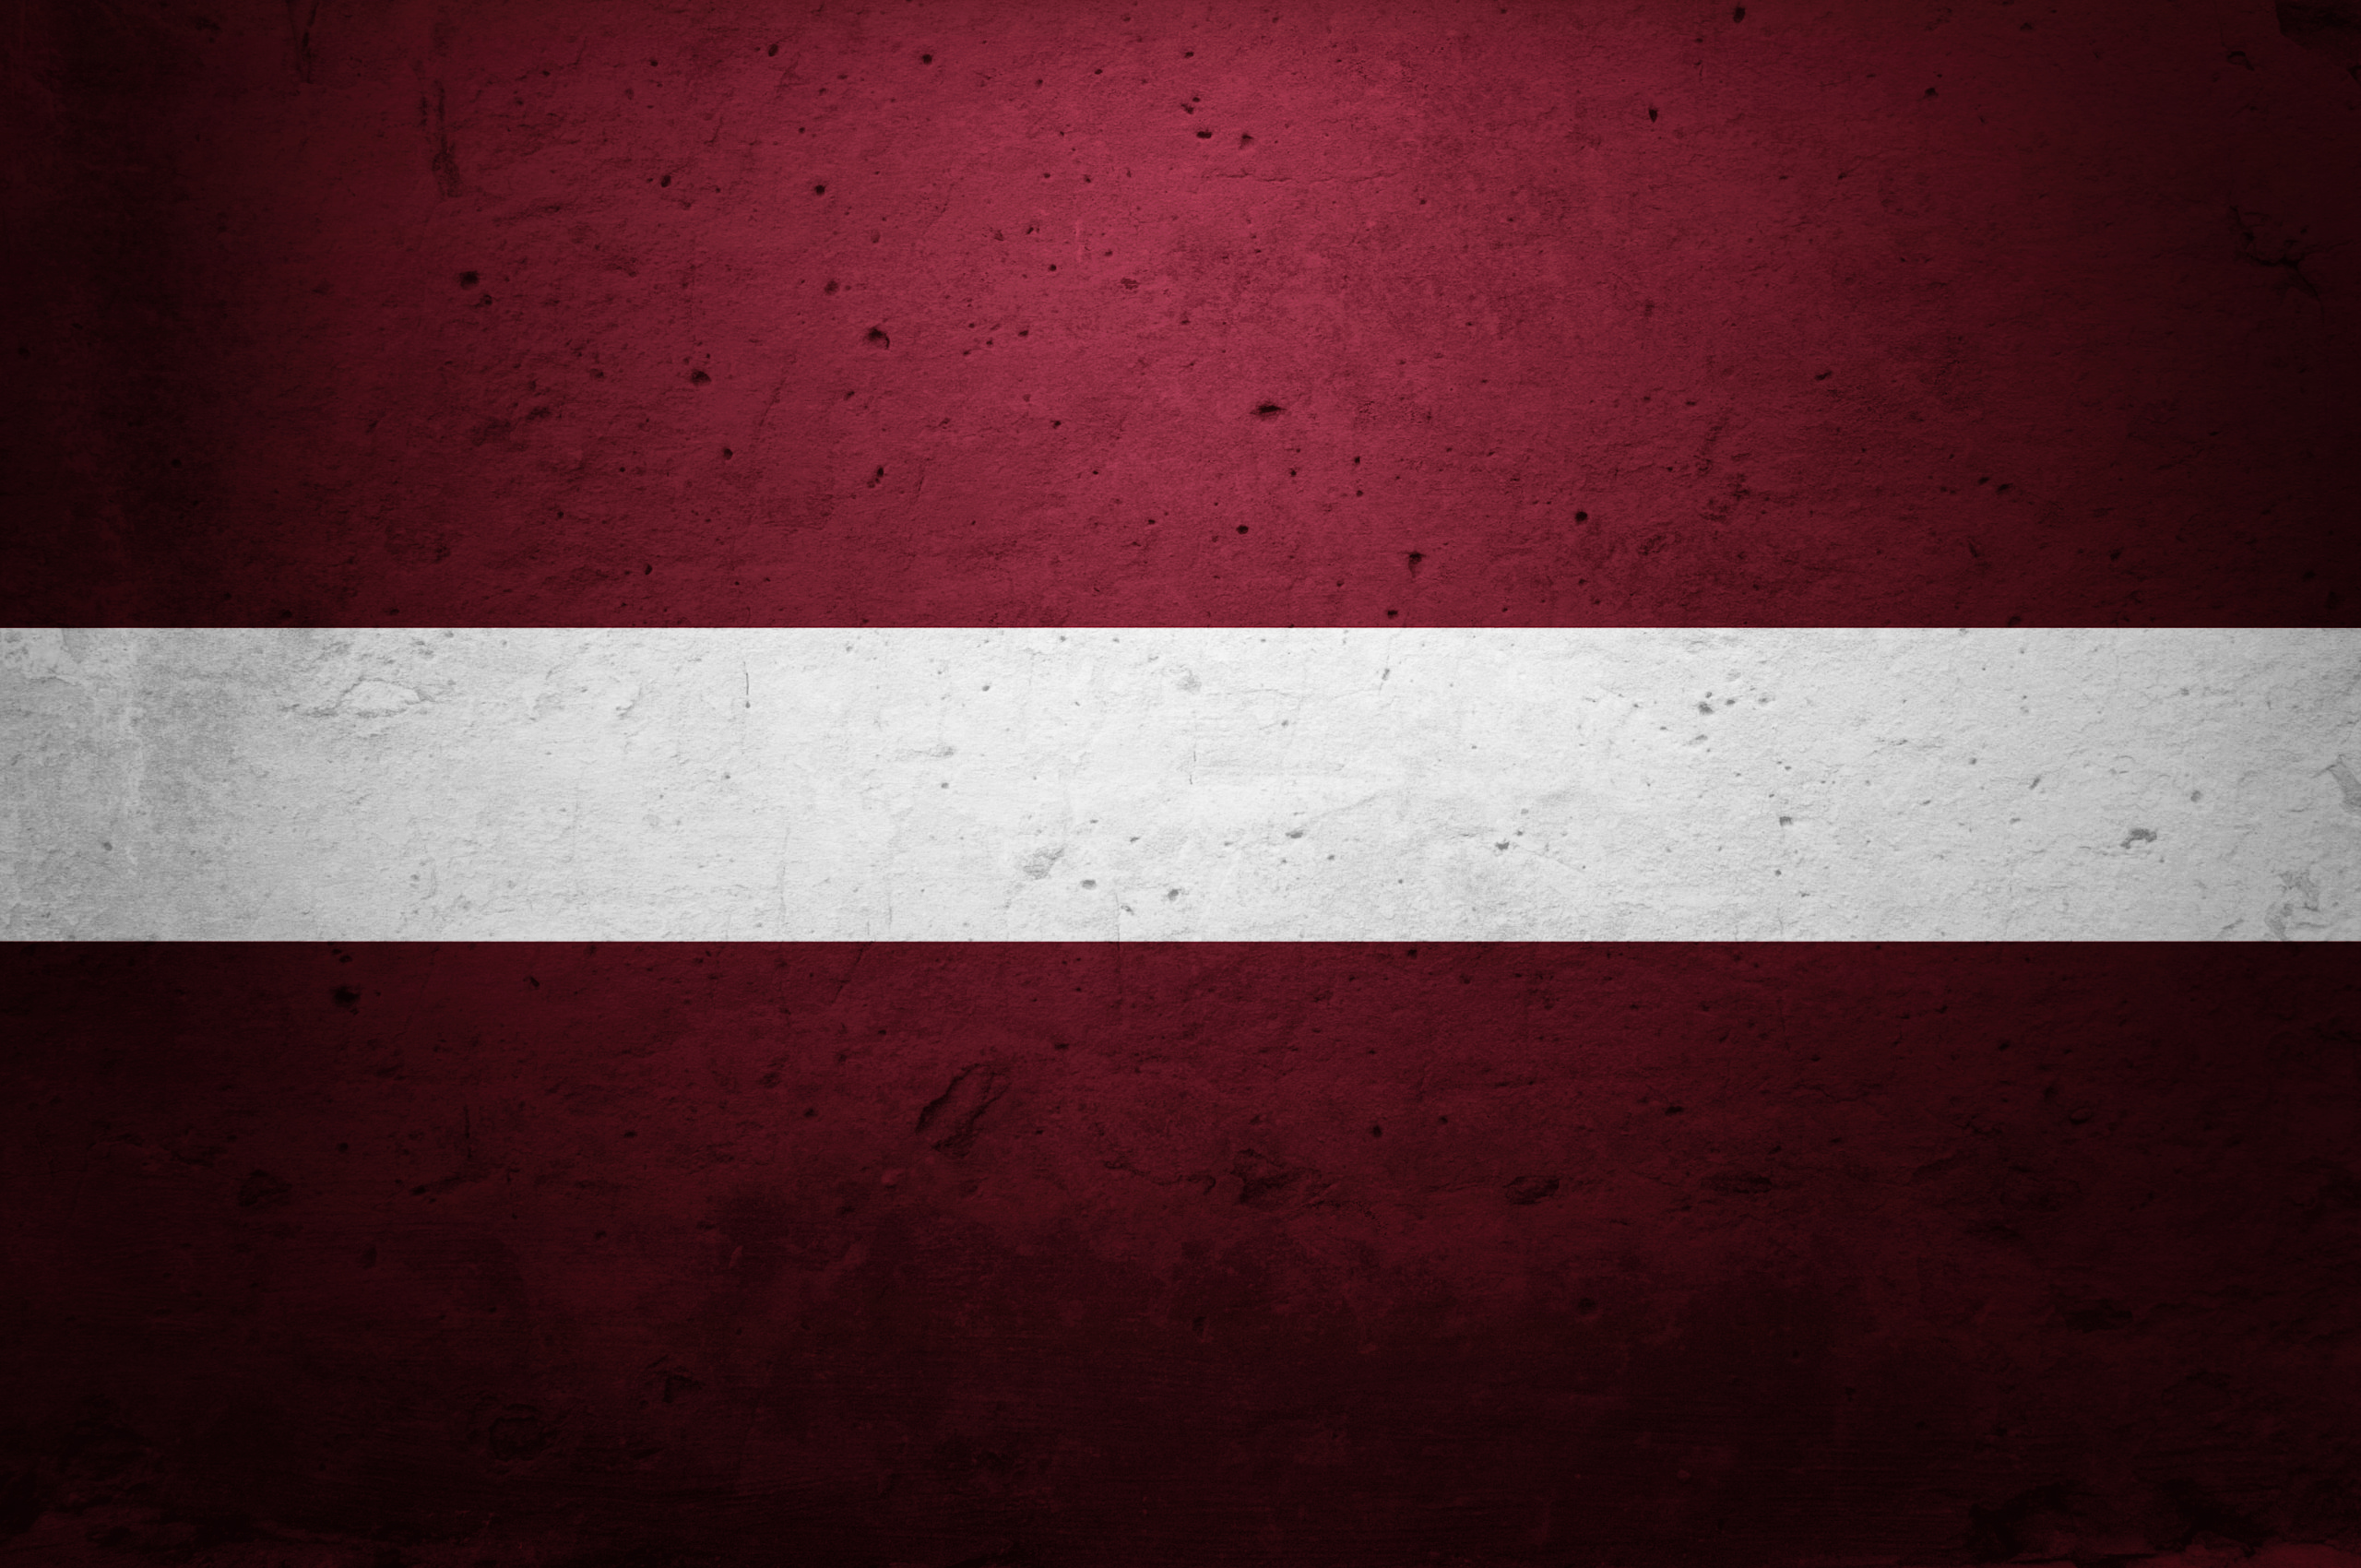 1920x1080 Wallpaper Quote 1 Flag Of Latvia Hd Wallpapers Backgrounds Wallpaper Abyss